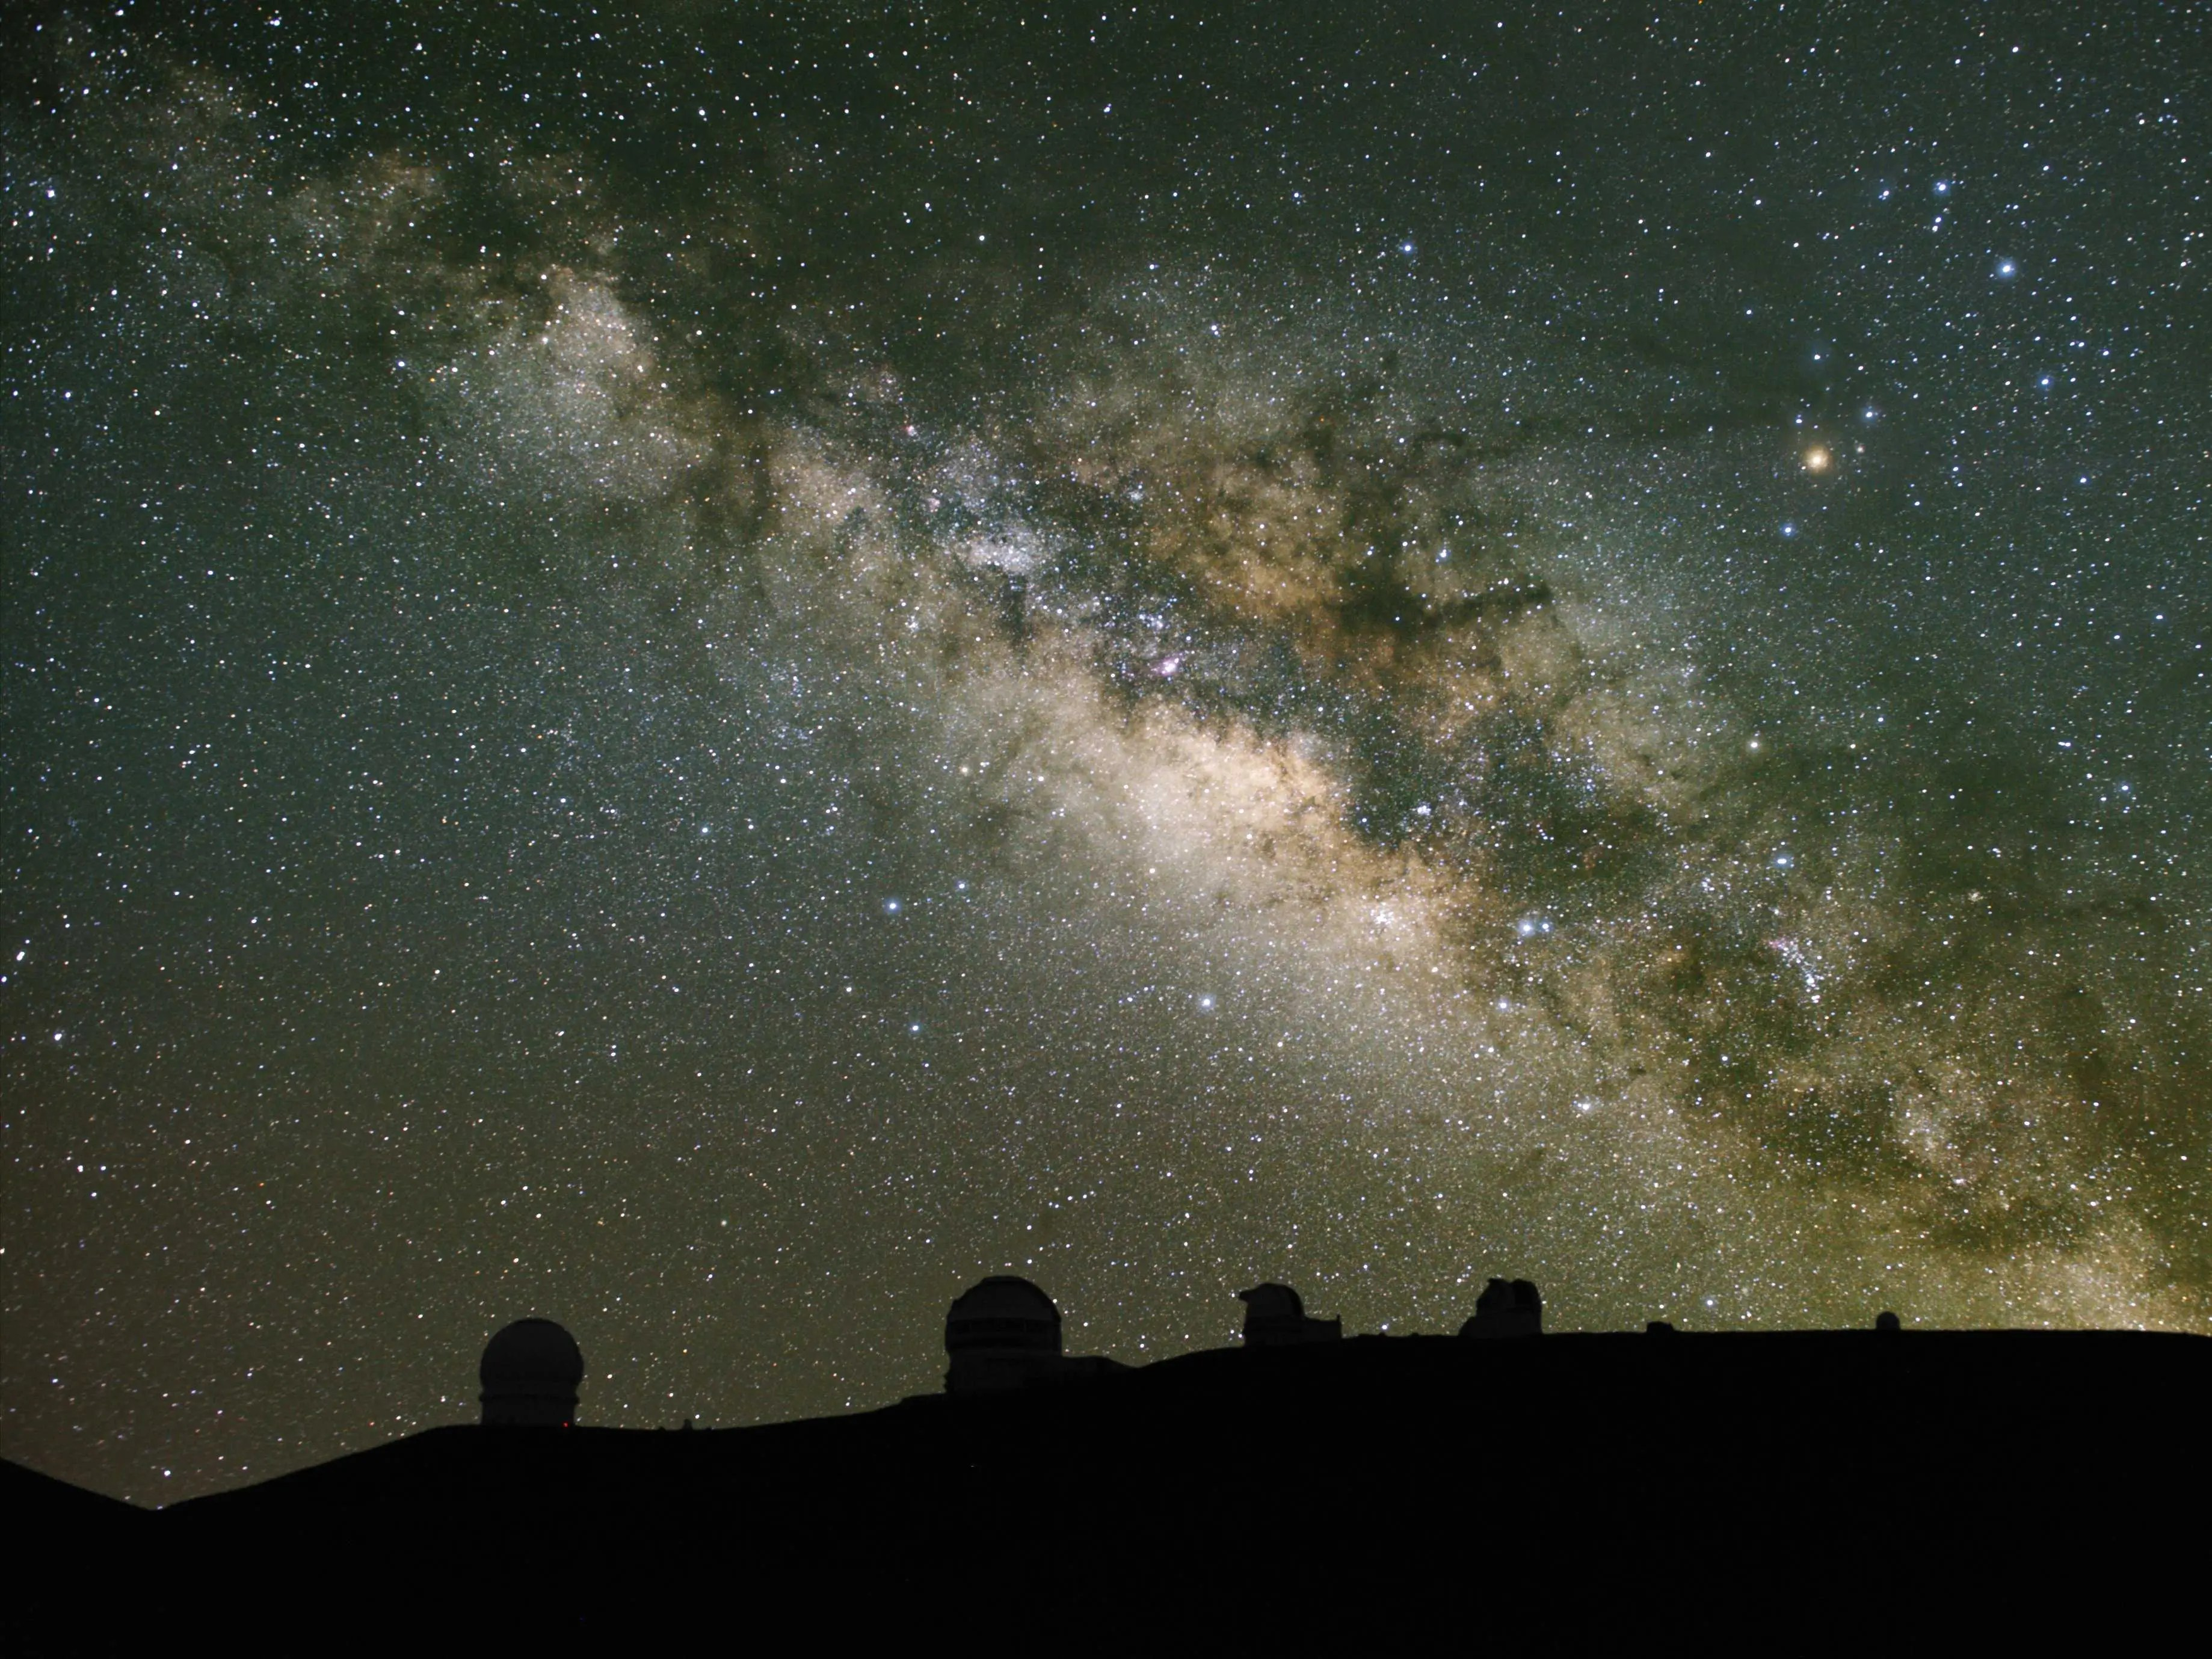 Drive up to the summit of Mauna Kea on the Big Island of Hawaii and watch the stars come out.